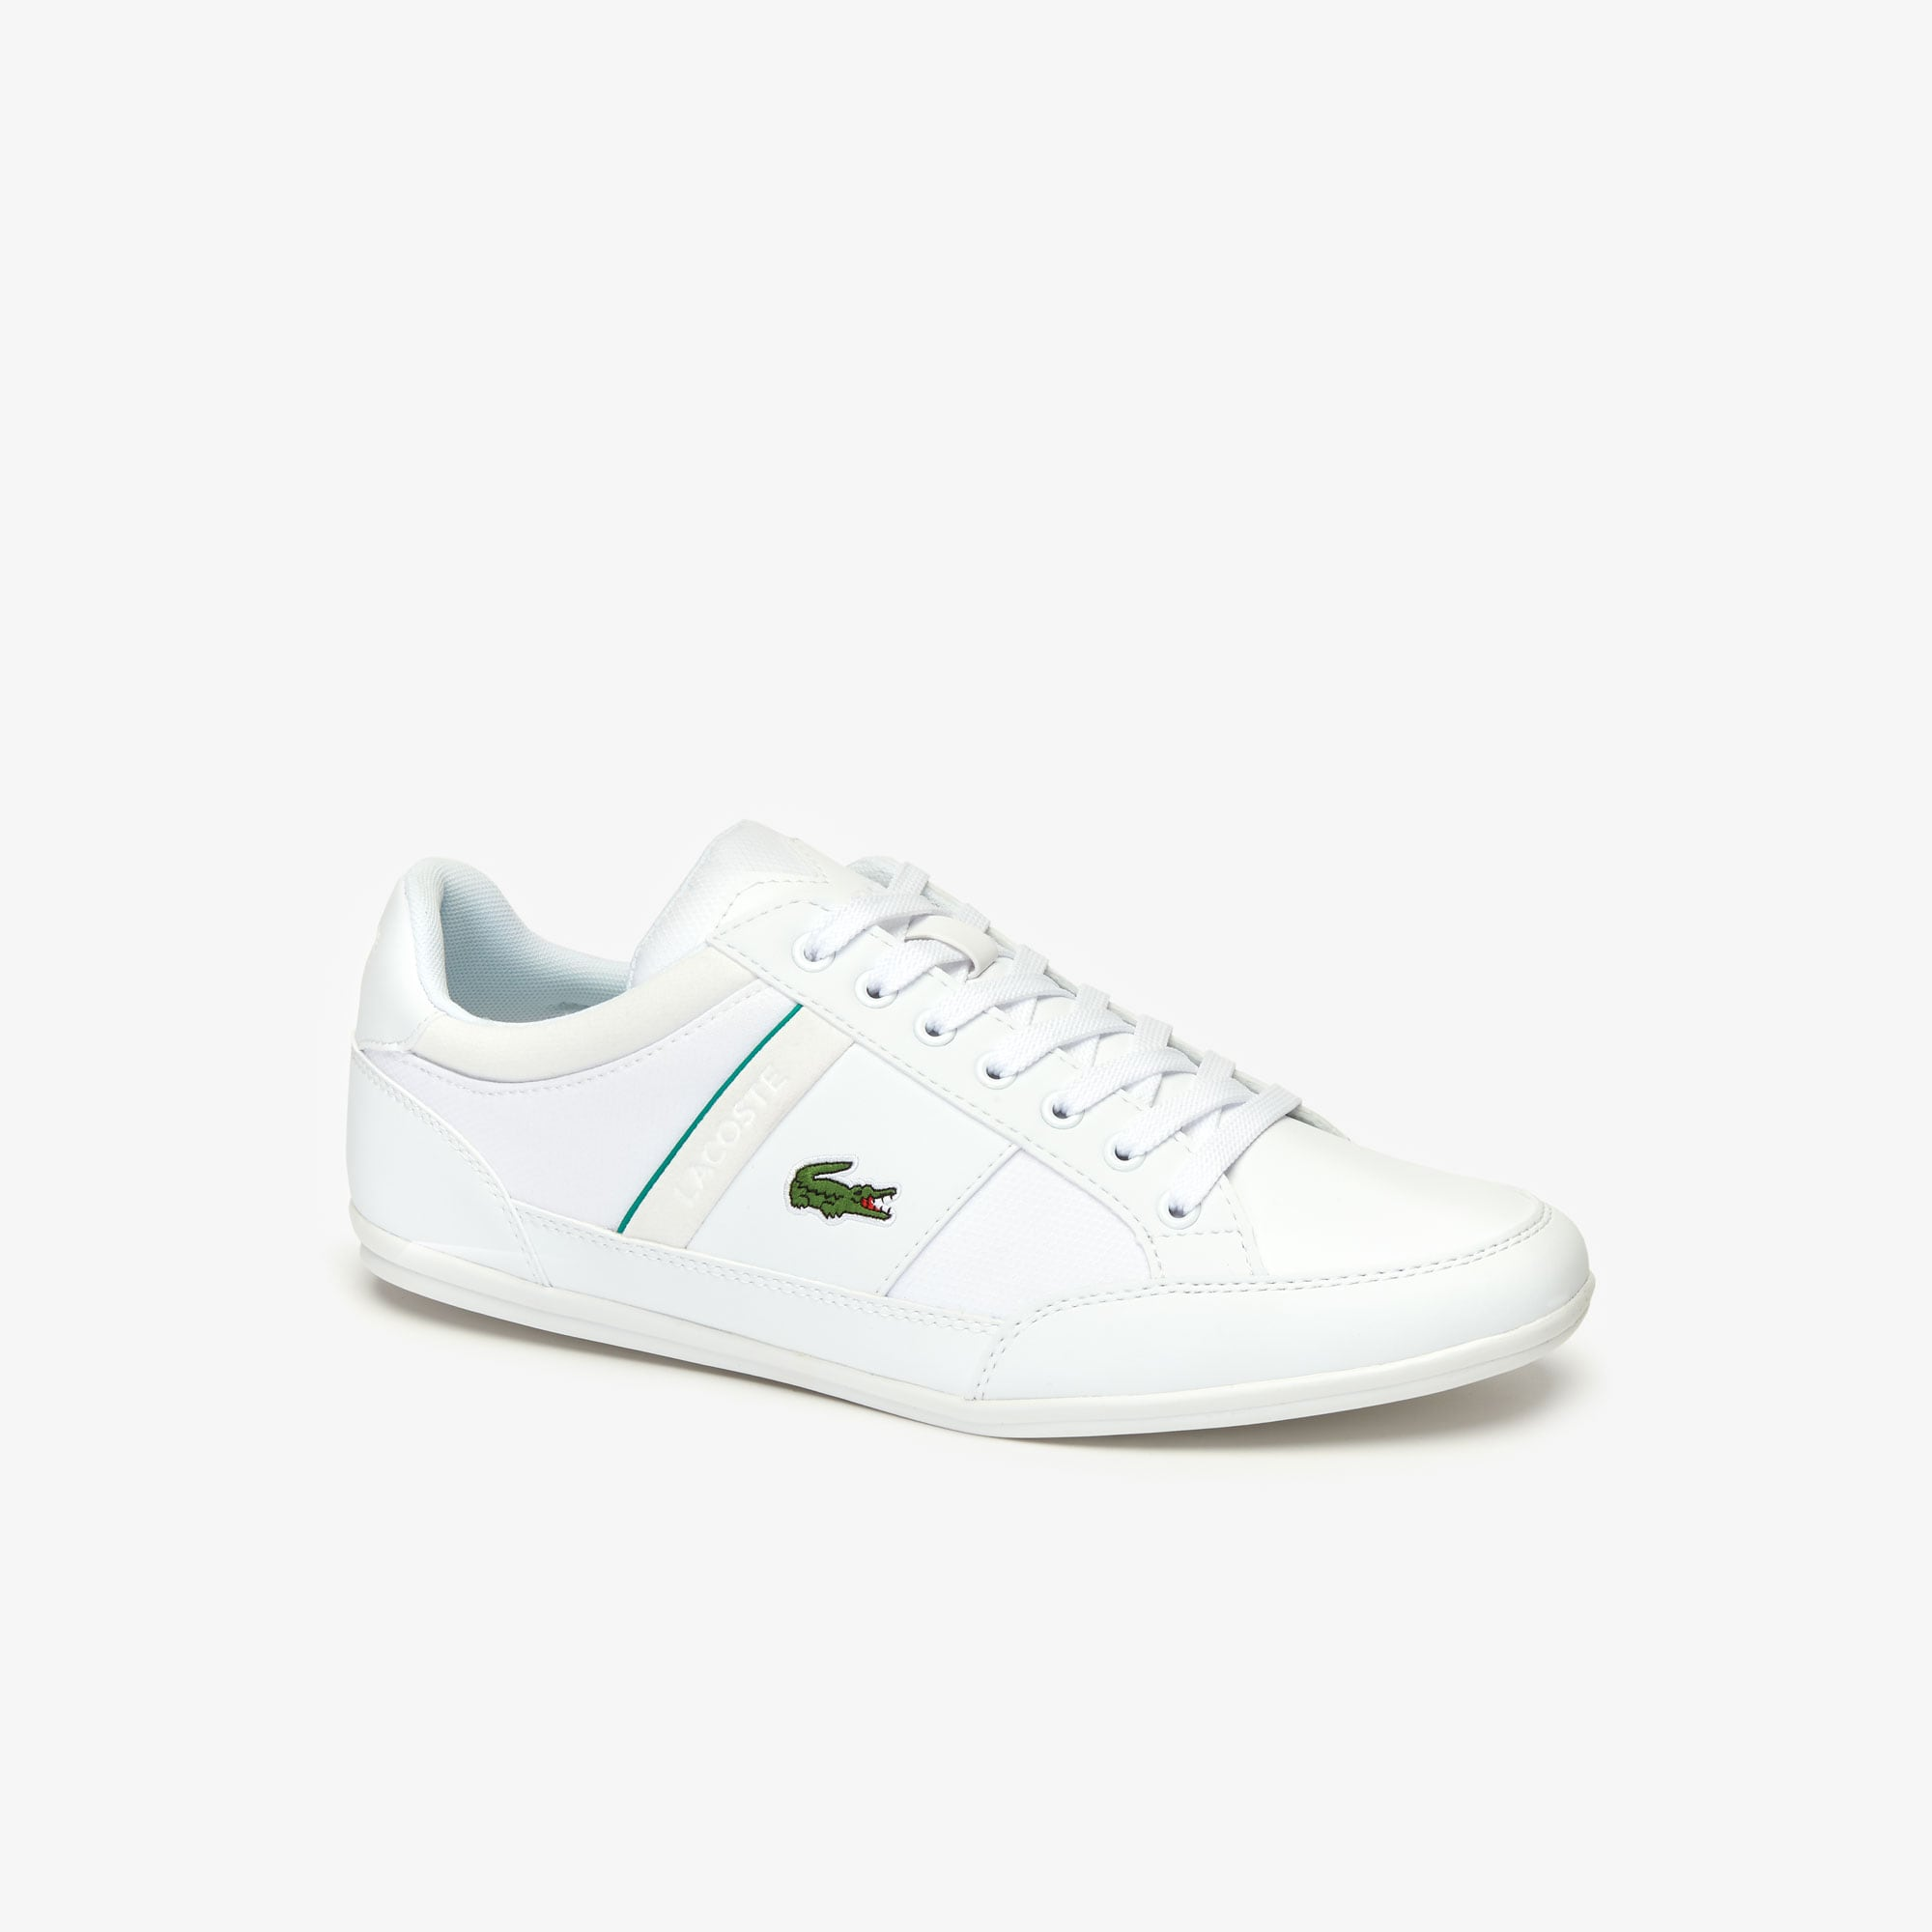 a1487c1e0 Men's Shoes | Shoes for Men | LACOSTE